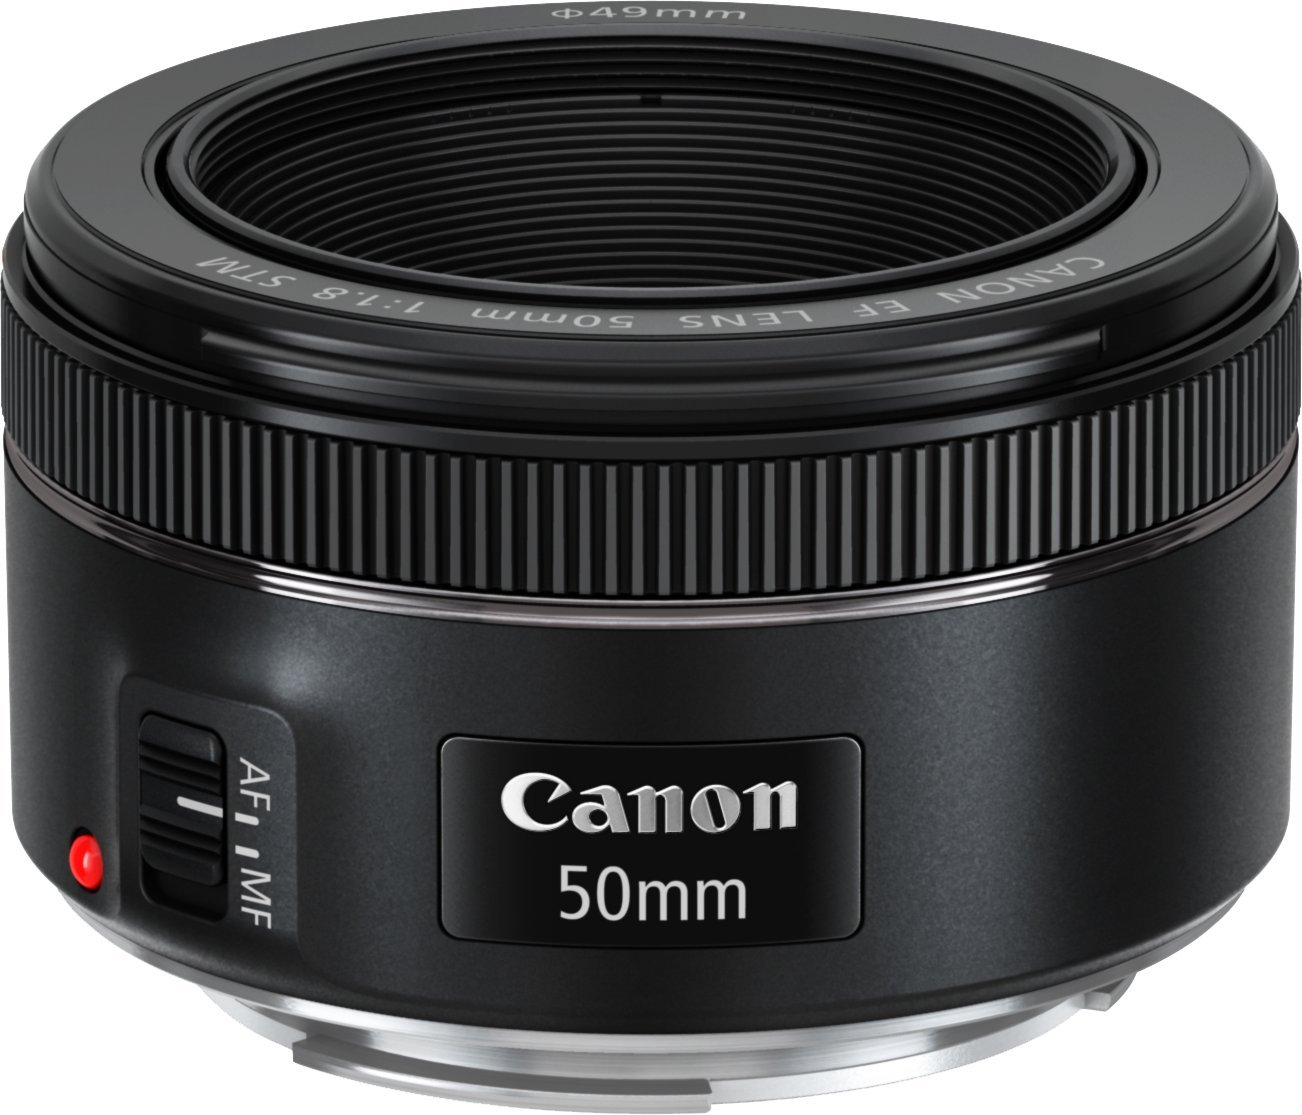 Canon EF 50mm f/1.8 STM Lens International Version (No warranty) 0570C005AA